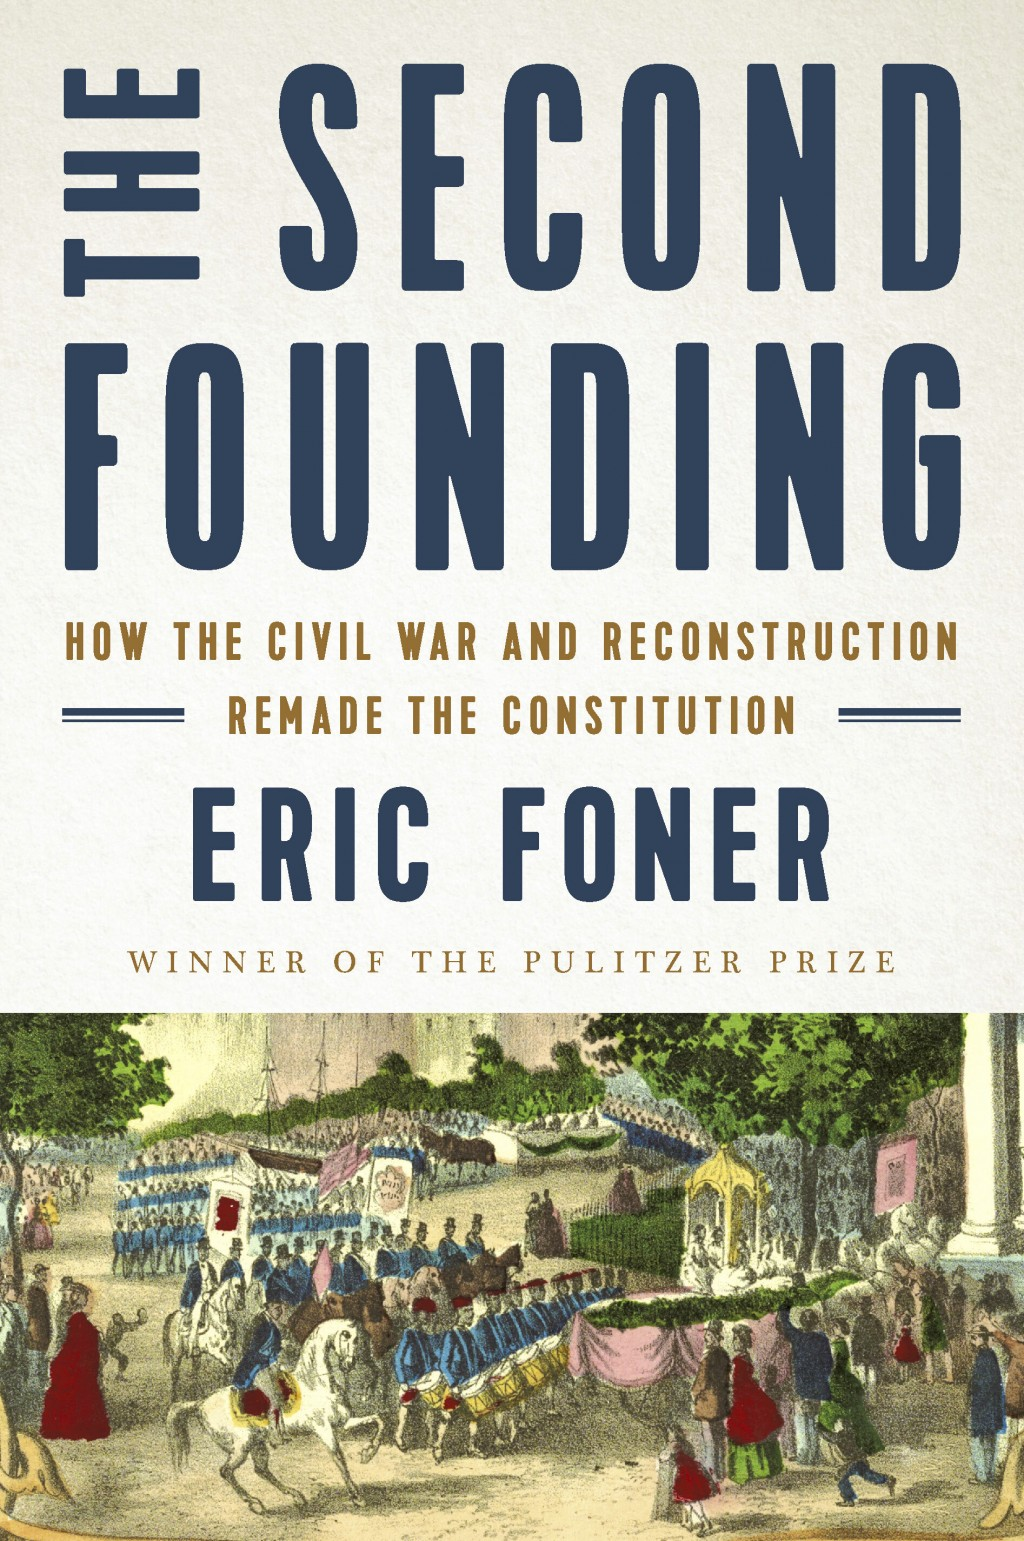 """This cover image released by W.W. Norton shows """"The Second Founding: How the Civil War and Reconstruction Remade the Constitution"""" by Eric Foner (W.W...."""